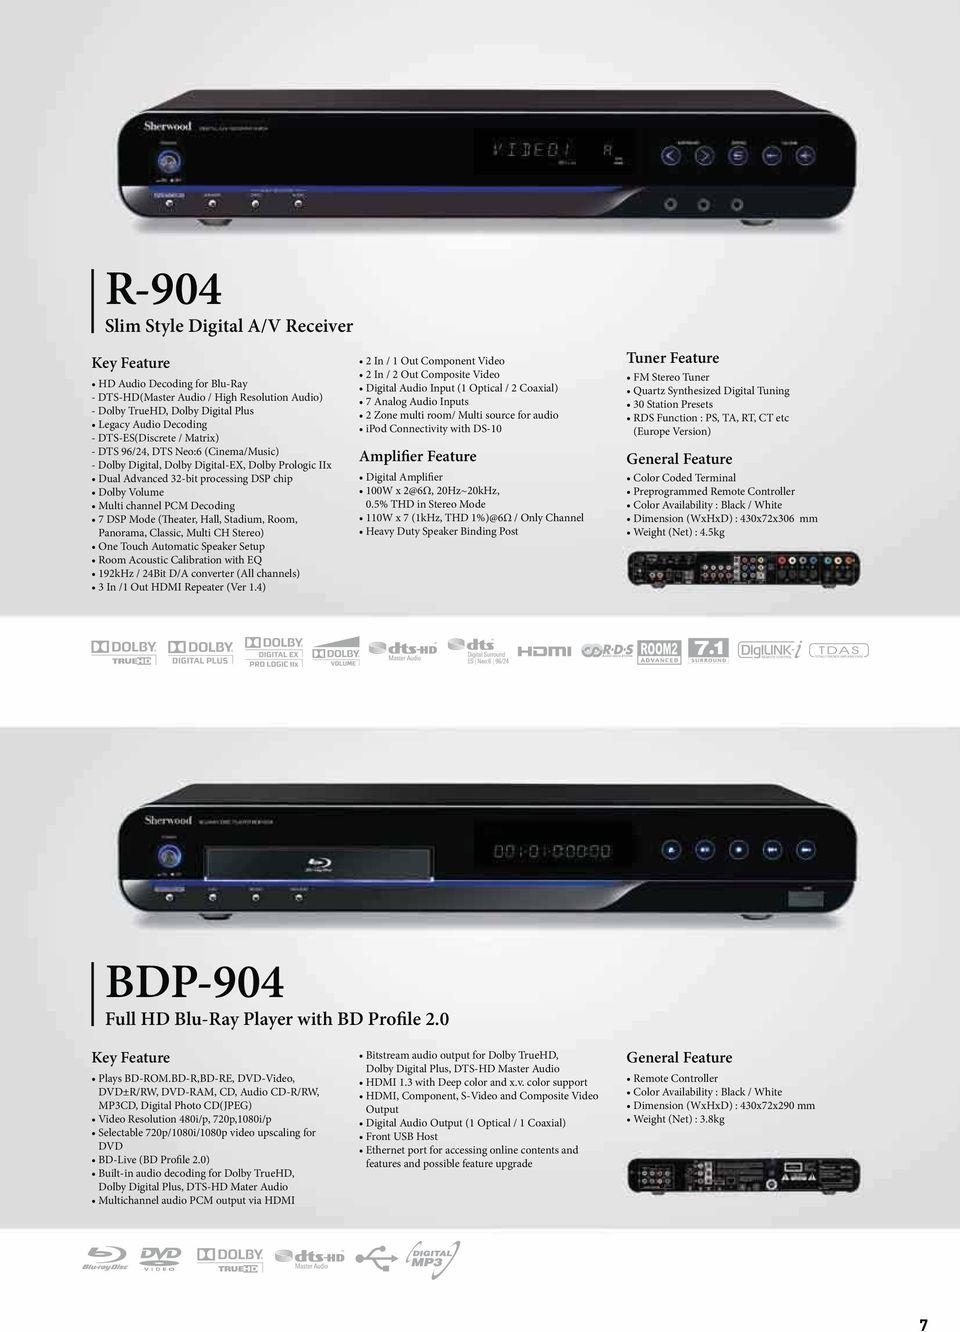 Amplifier Feature 0.5% THD in Stereo Mode Tuner Feature (Europe Version) BDP-904 Full HD Blu-Ray Player with BD Profile 2.